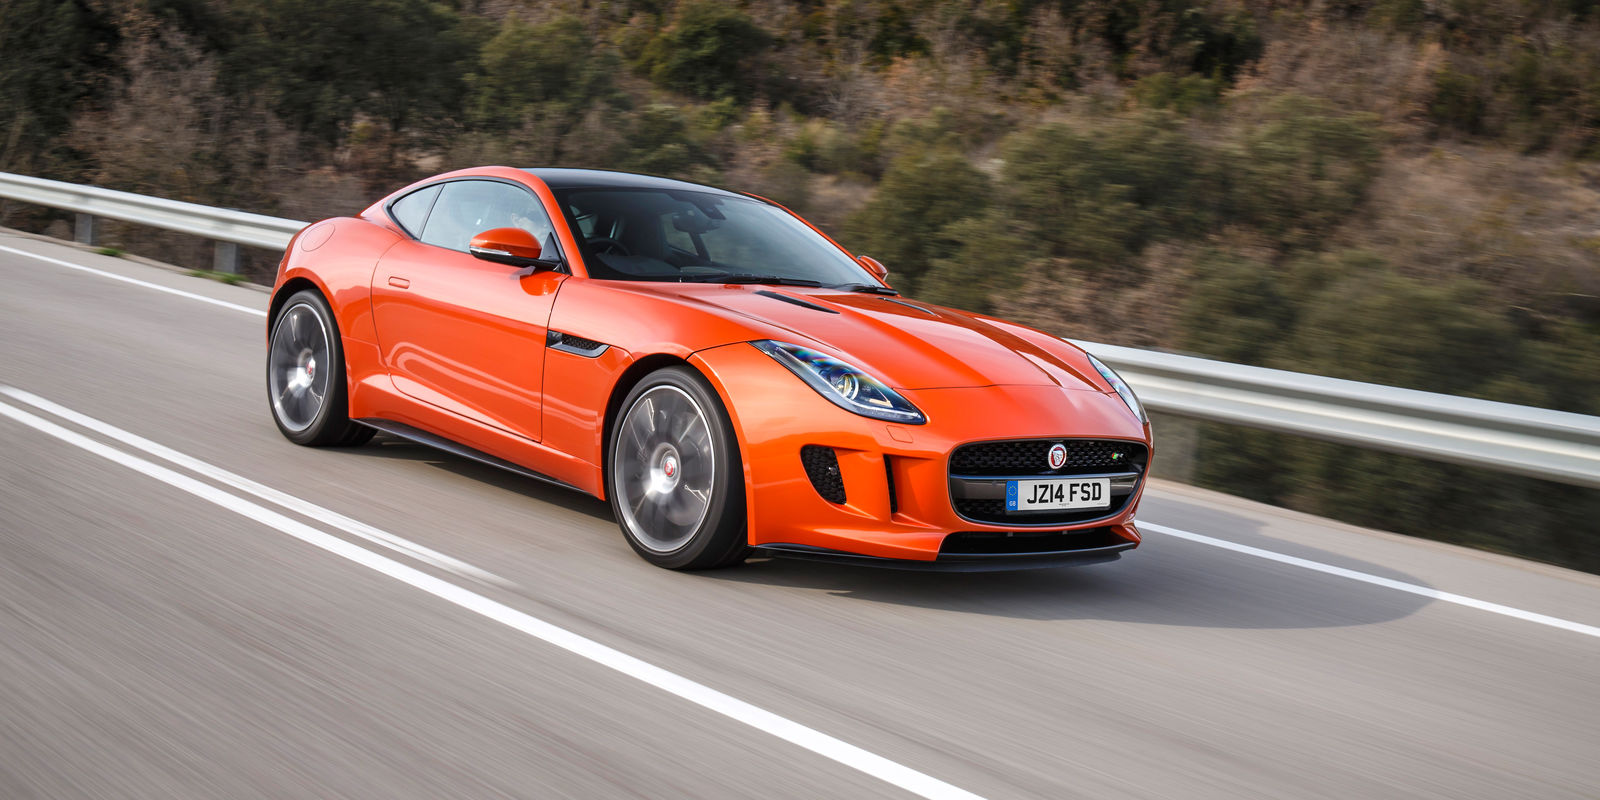 jaguar f type manual gearbox